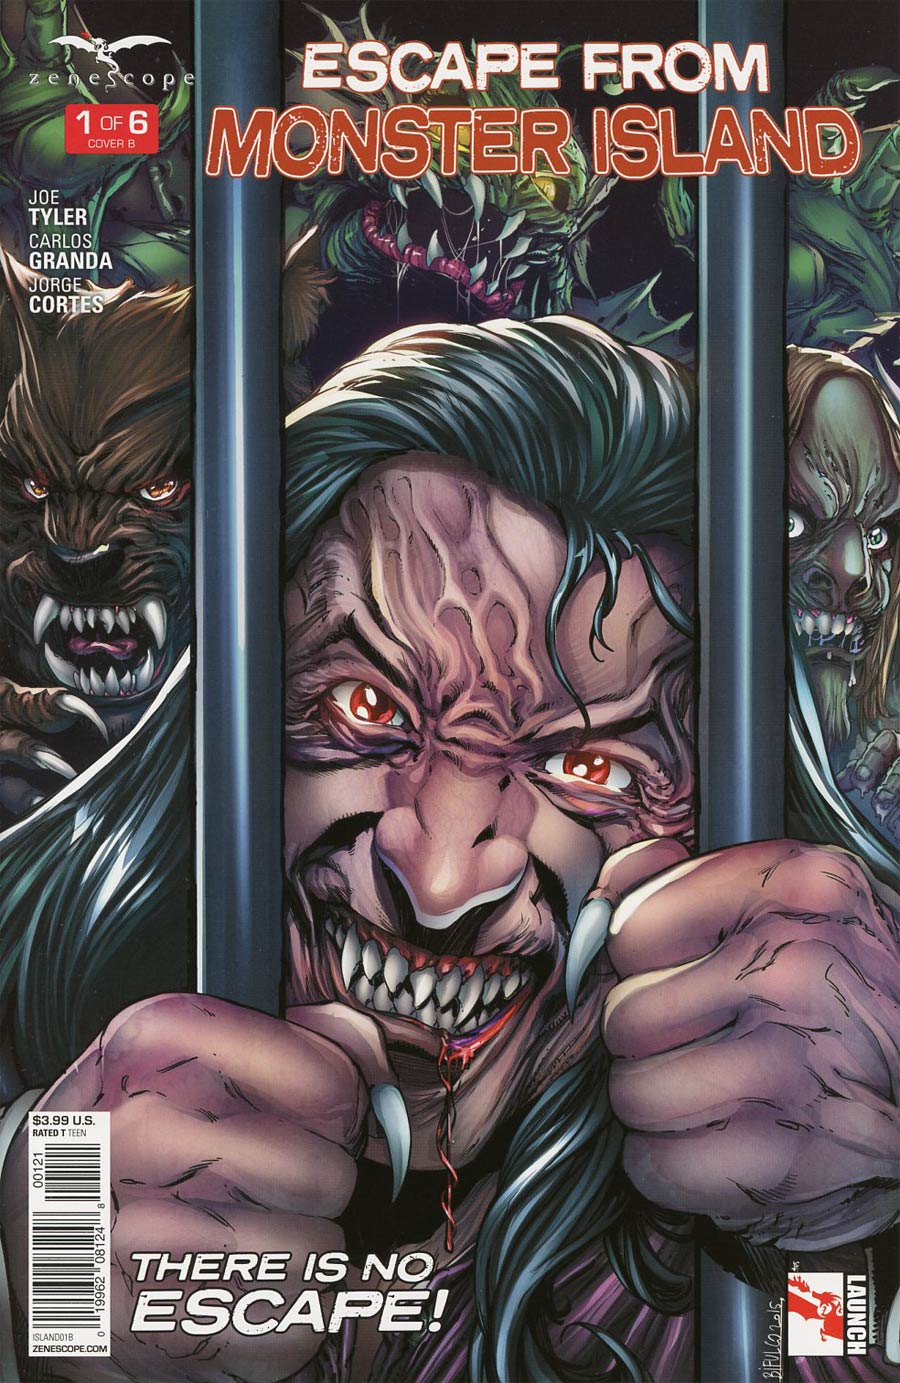 Grimm Fairy Tales Presents Escape From Monster Island #1 Cover B Marat Mychaels